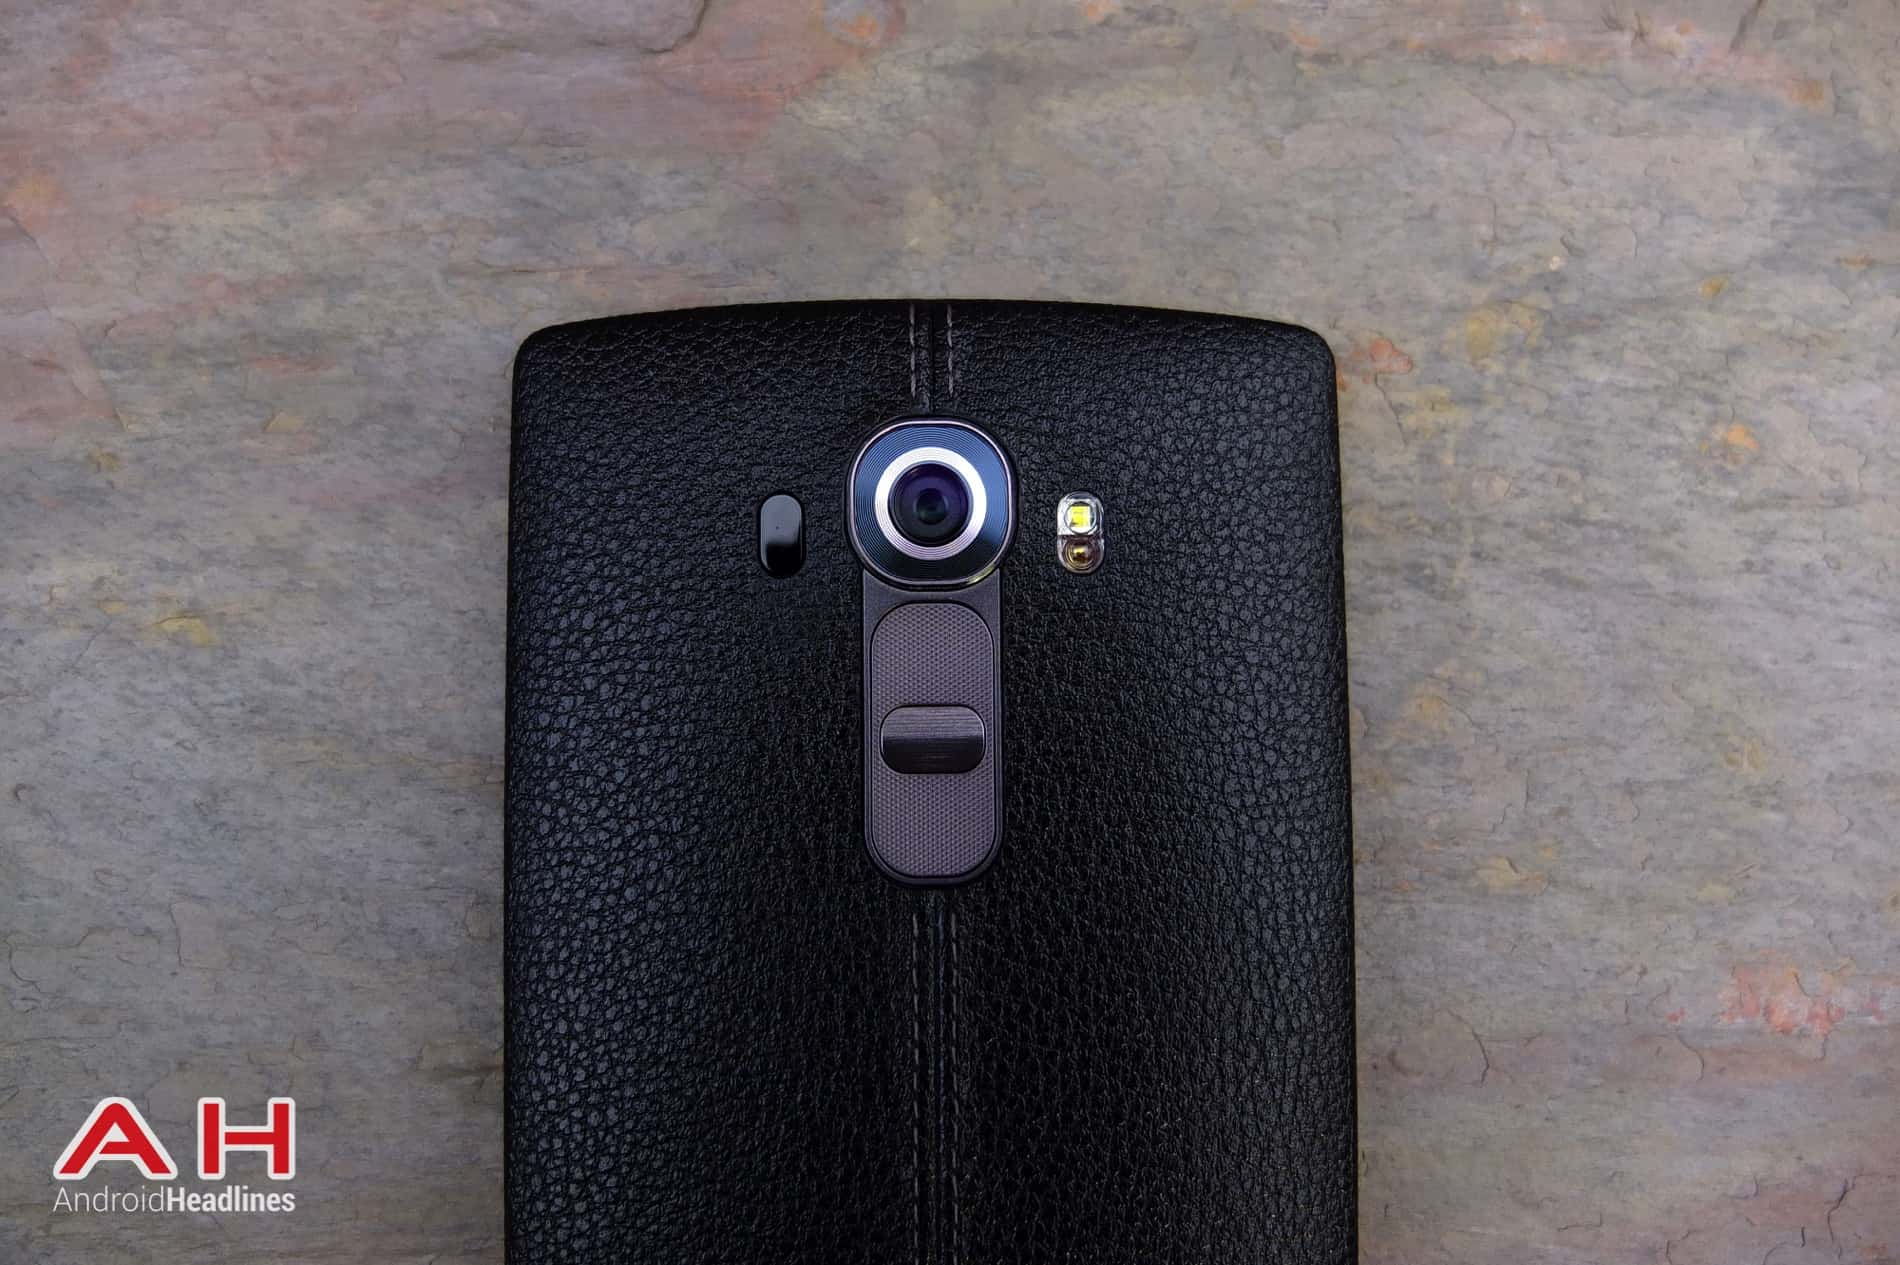 LG G4 BlackLeather TD AH 13